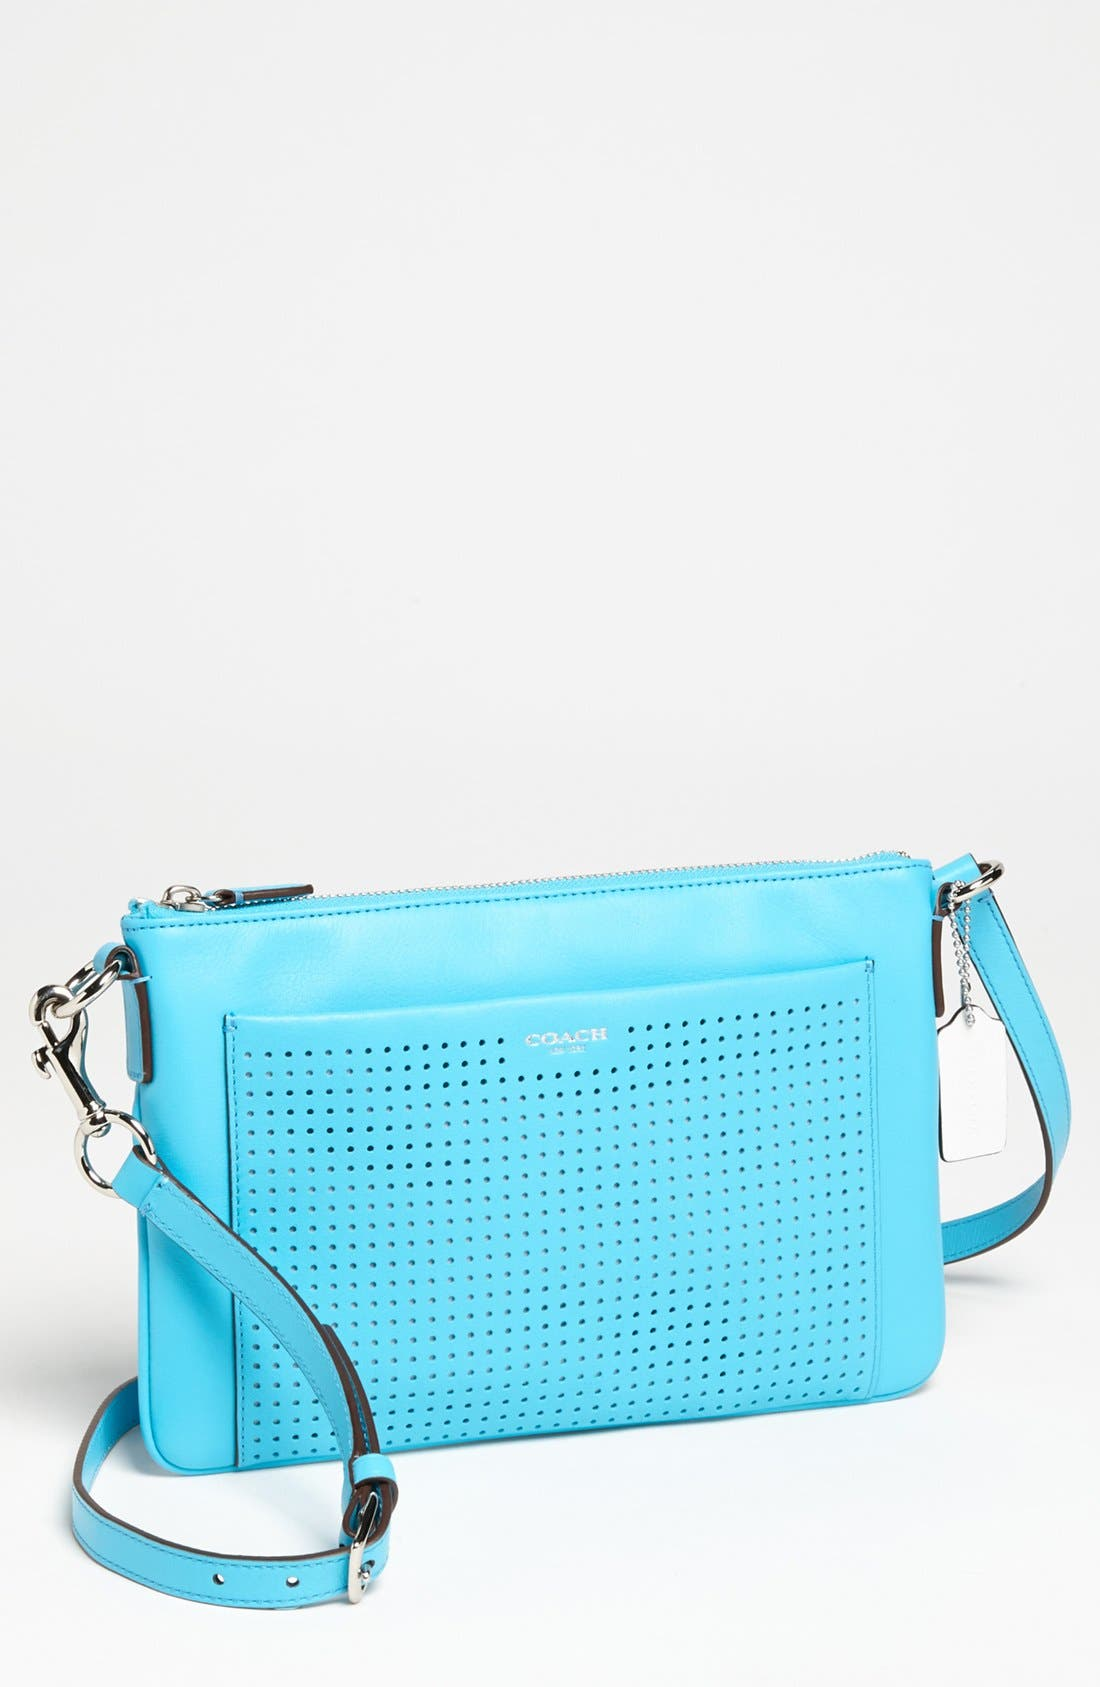 Main Image - COACH 'Legacy - Swingpack' Perforated Leather Crossbody Bag, Small